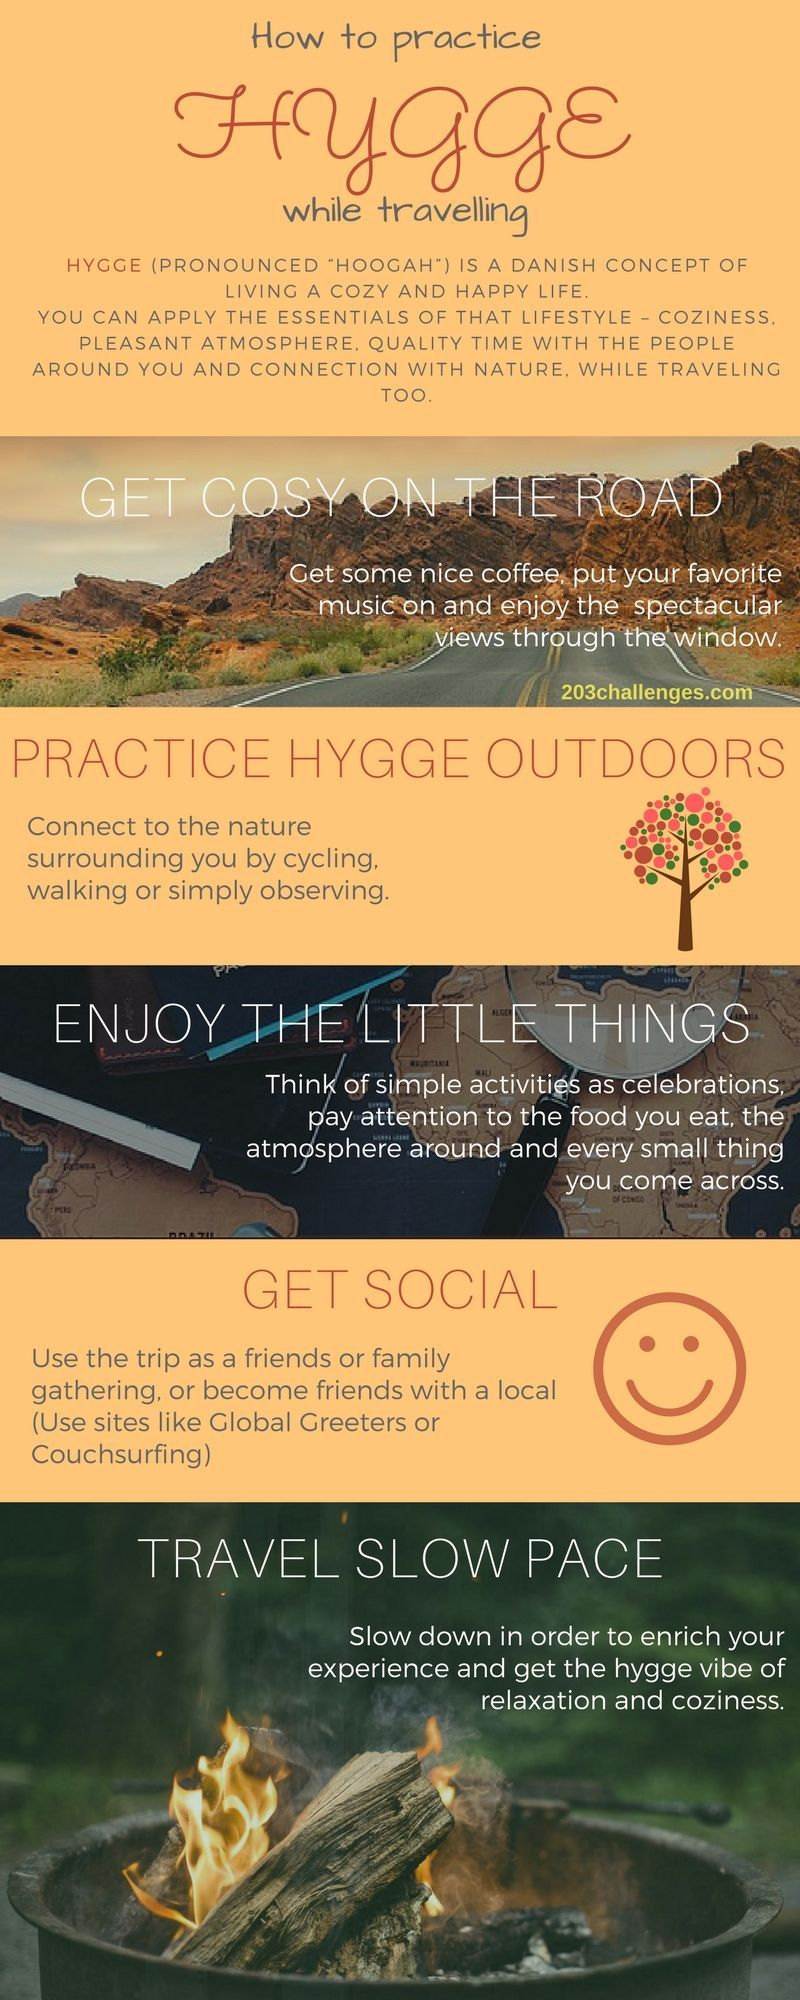 Hygge: how to apply the Danish cozy lifestyle to traveling (INFOGRAPHIC) #style #shopping #styles #outfit #pretty #girl #girls #beauty #beautiful #me #cute #stylish #photooftheday #swag #dress #shoes #diy #design #fashion #Travel